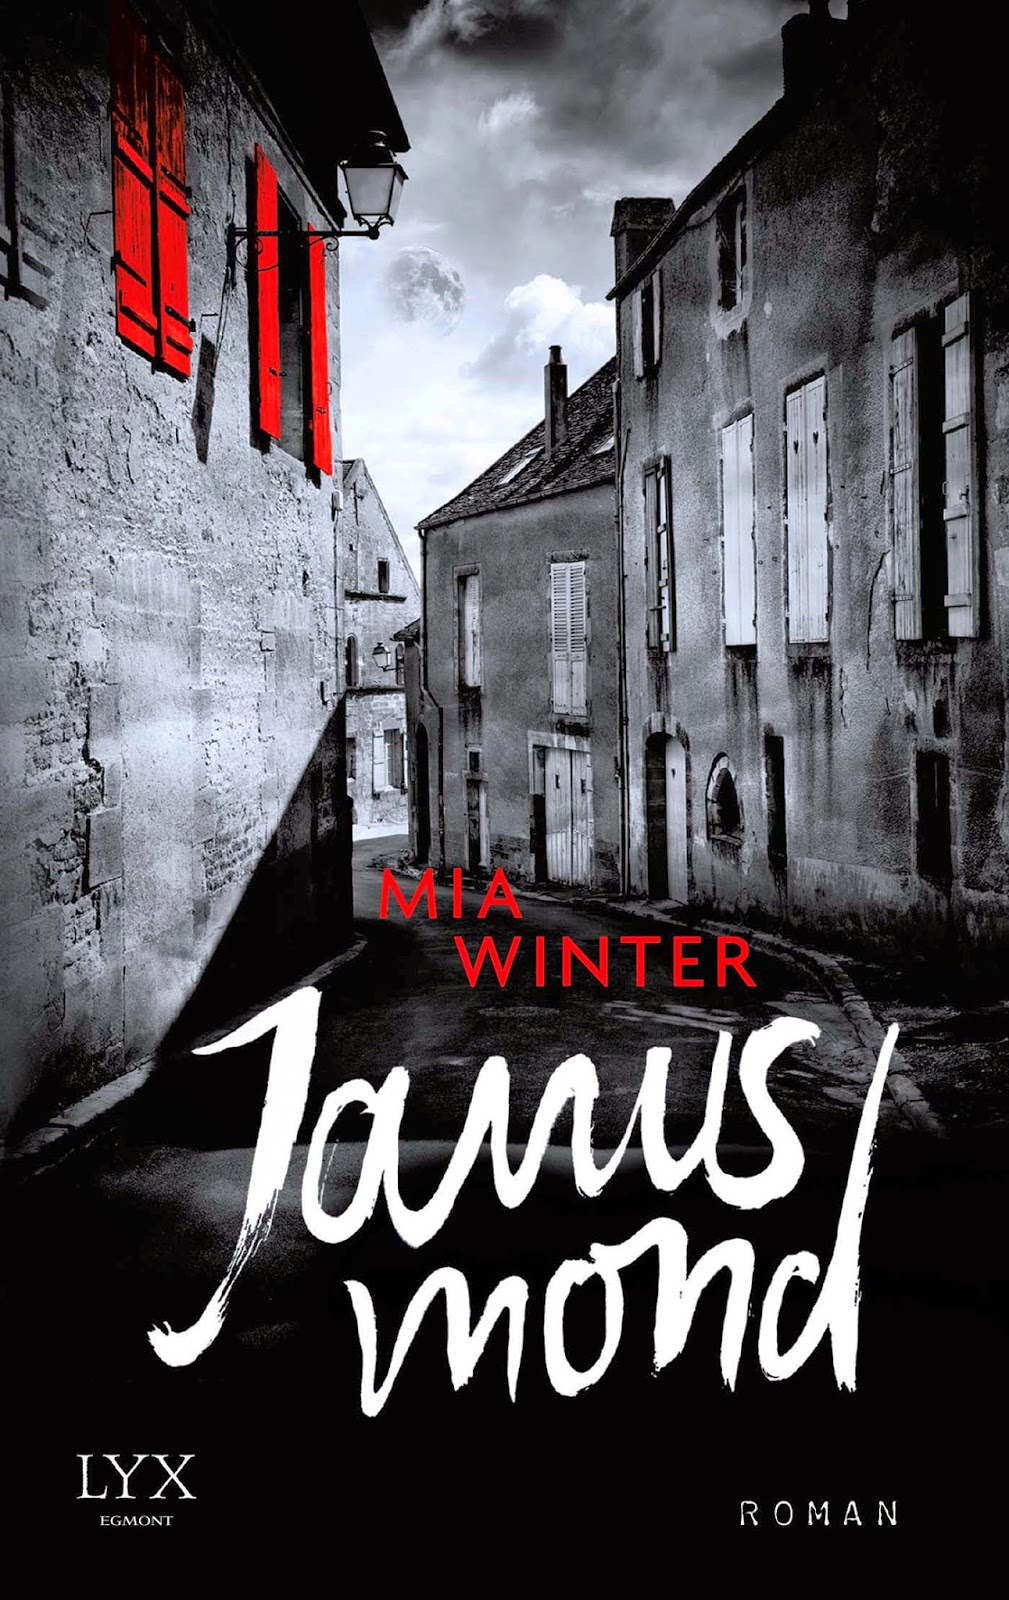 http://www.amazon.de/Janusmond-Mia-Winter/dp/3802597907/ref=tmm_pap_title_0?ie=UTF8&qid=1427755867&sr=1-1